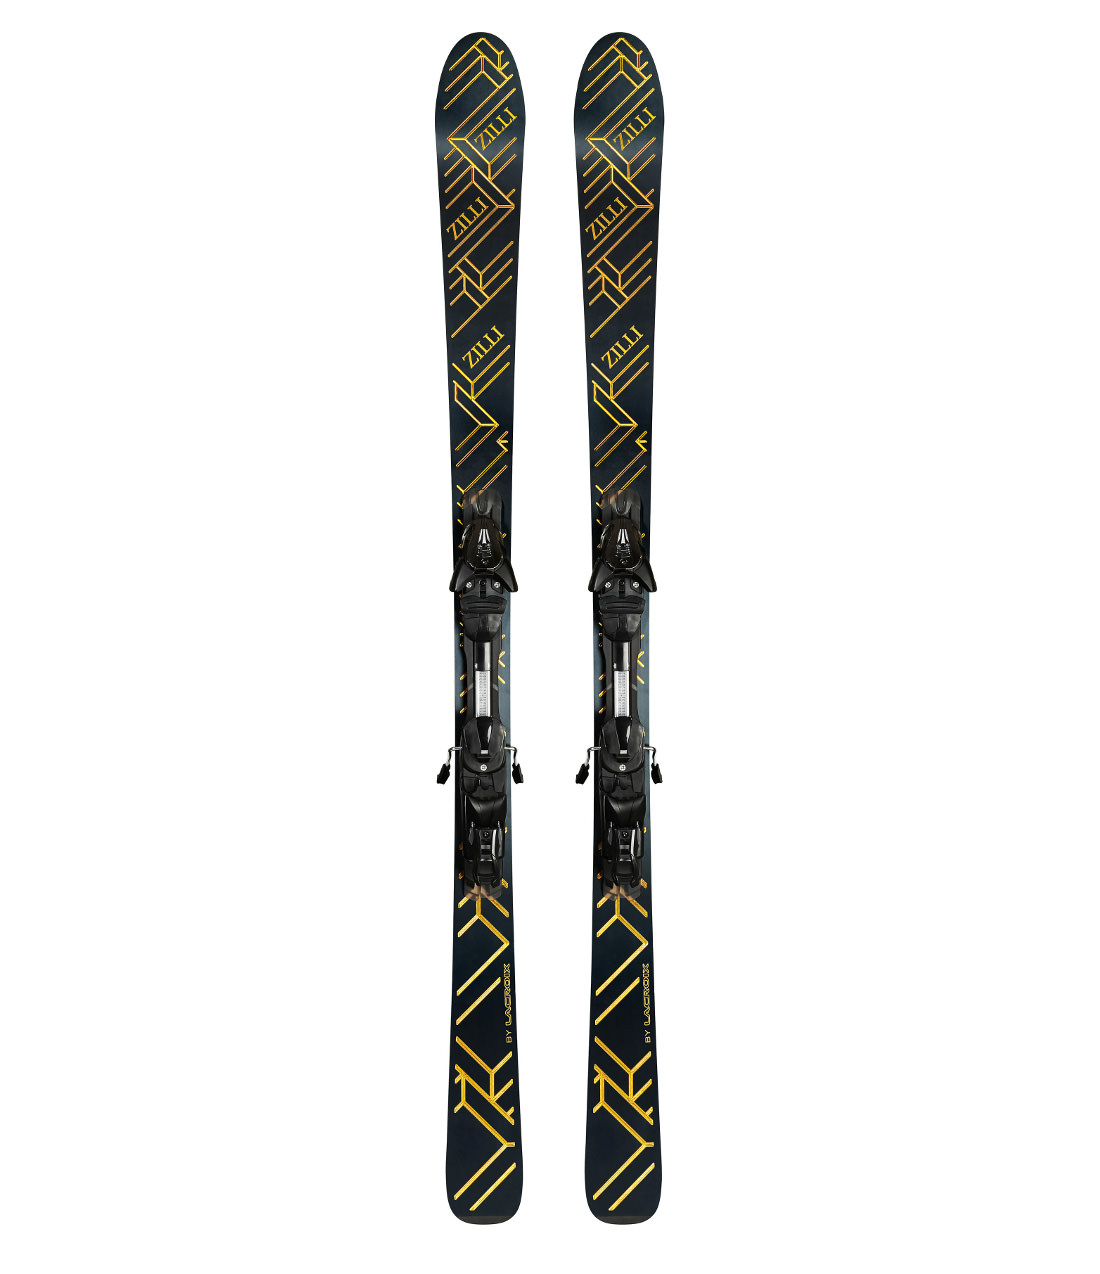 zilli-skis-by-lacroix-2